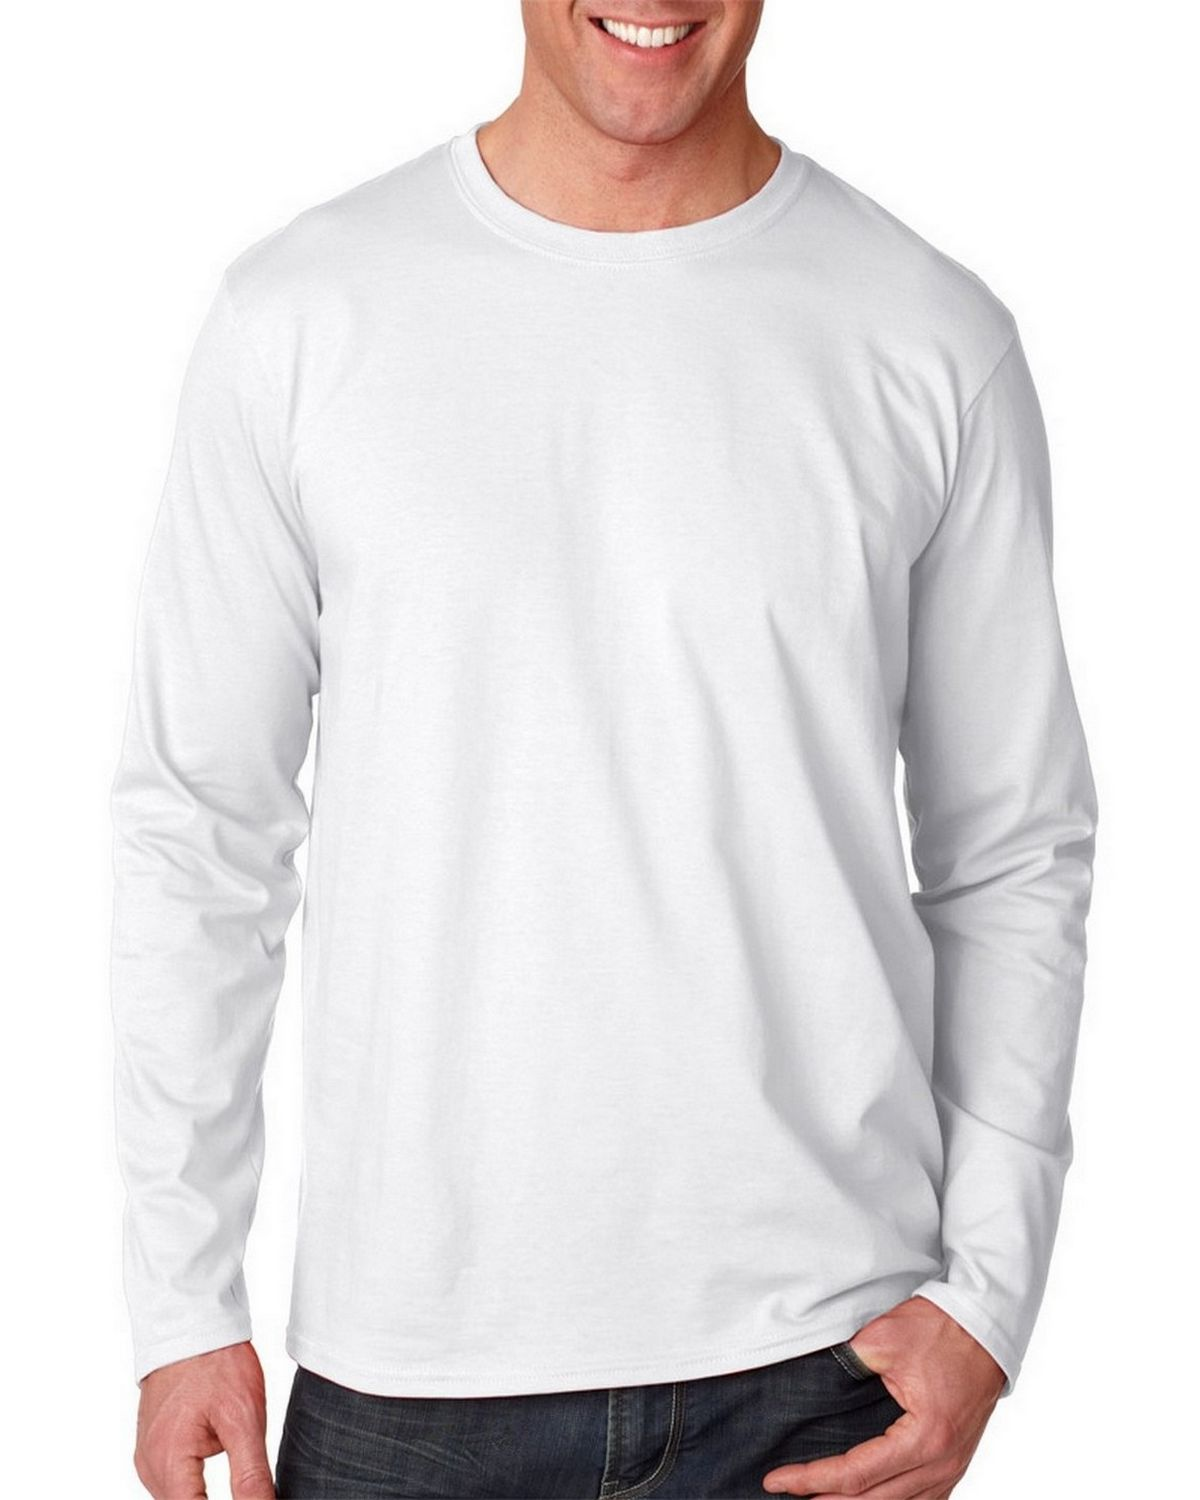 Gildan 64400 Adult Long Sleeve T Shirt - ApparelnBags.com